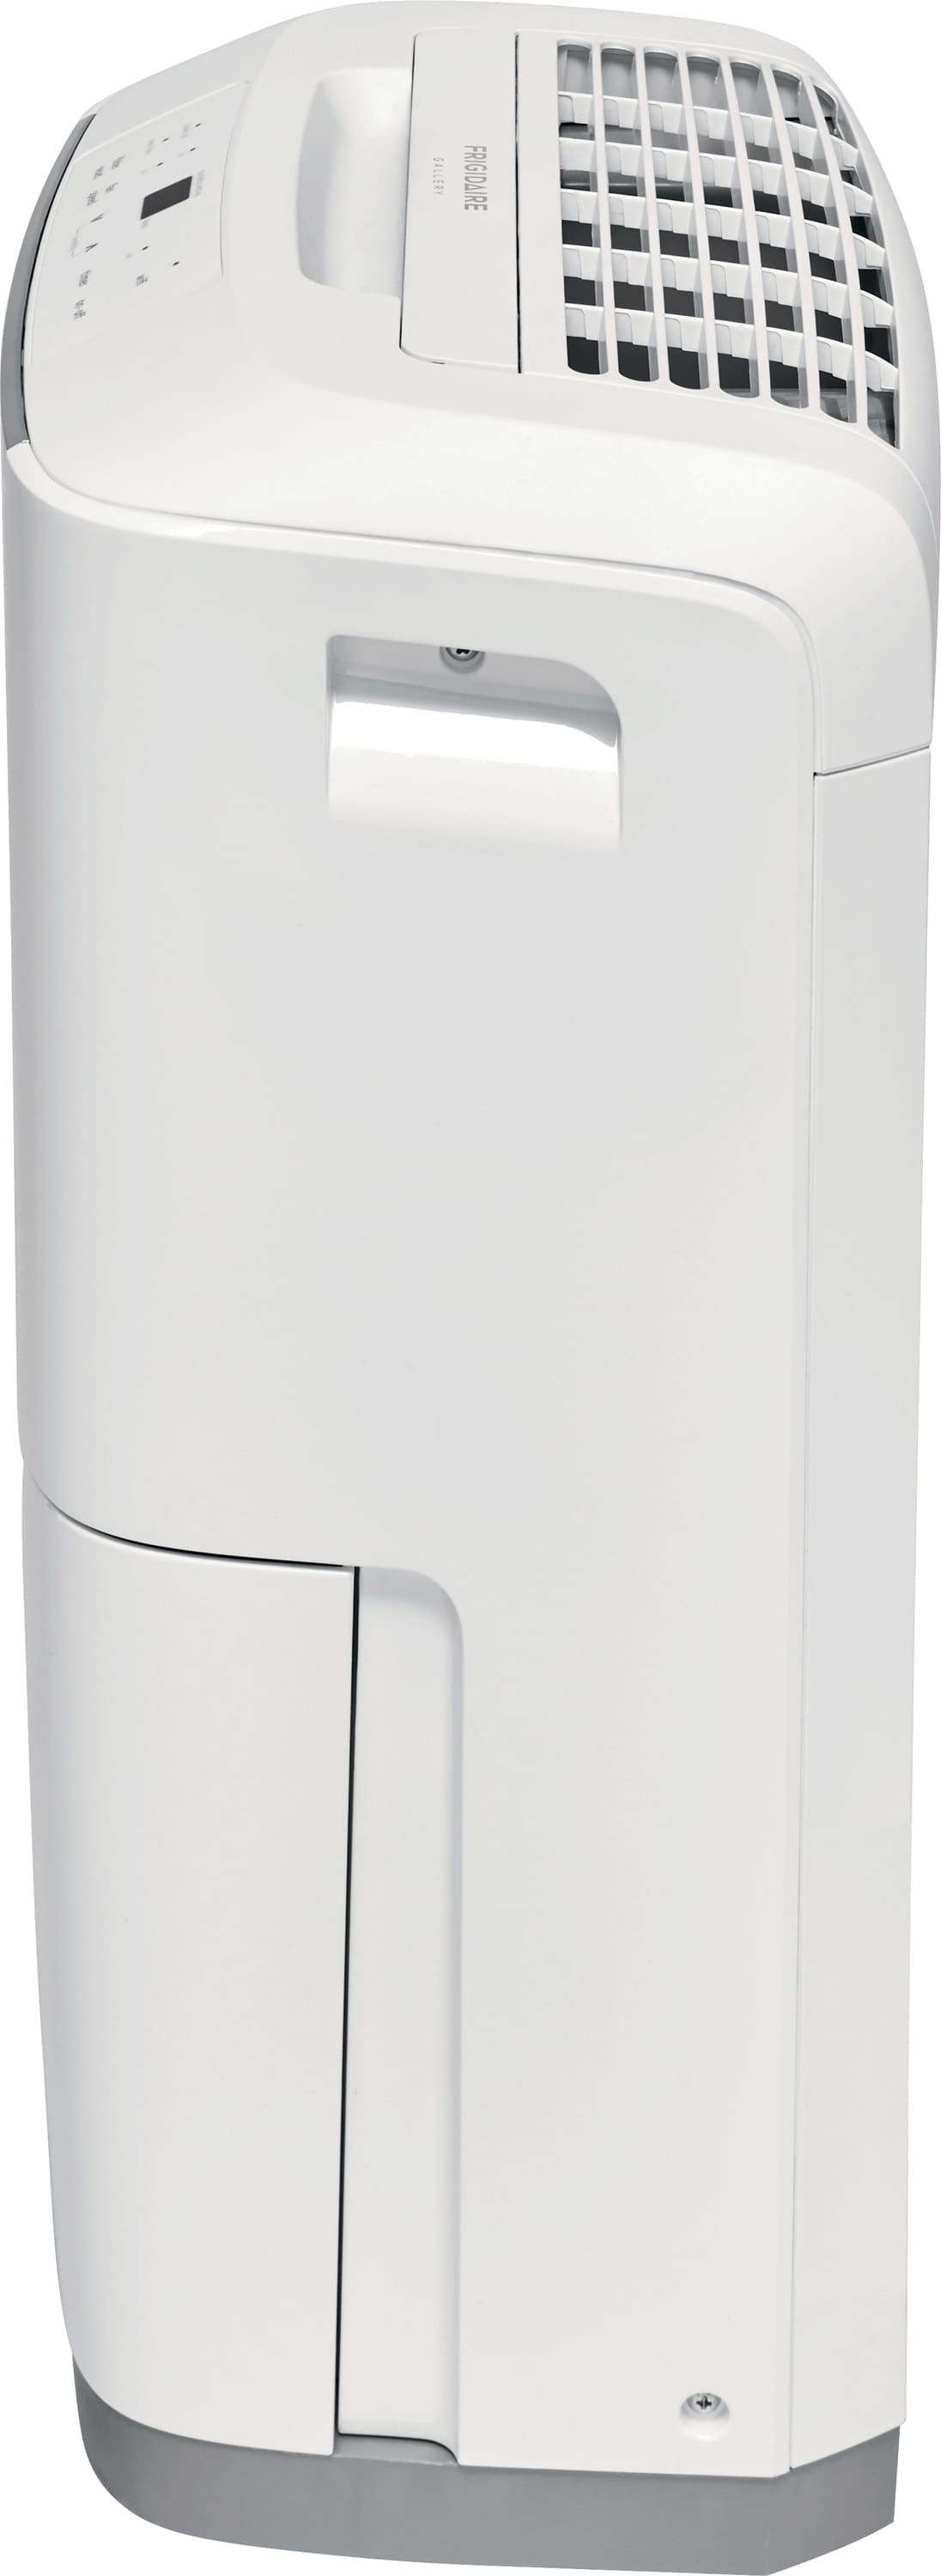 Model: FGAC7044U1 | Frigidaire Gallery Large Room 70 Pint Capacity Dehumidifier with Wifi